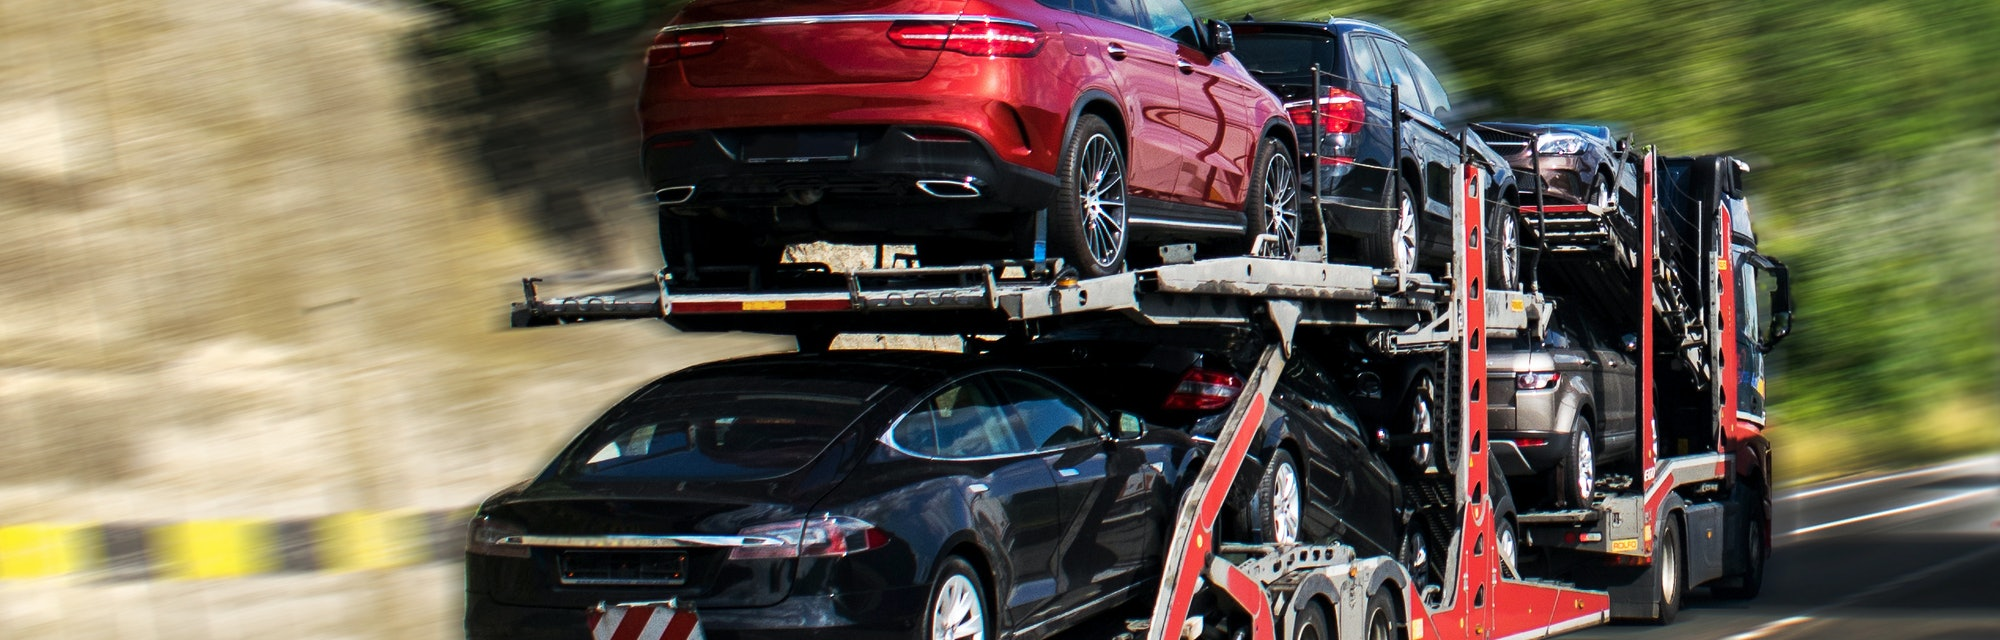 Hauling cars. A car carrier trailer, known variously as a car-carrying trailer, car hauler, auto transport trailer. Photo in motion. Panning. New and very expensive cars transportation.